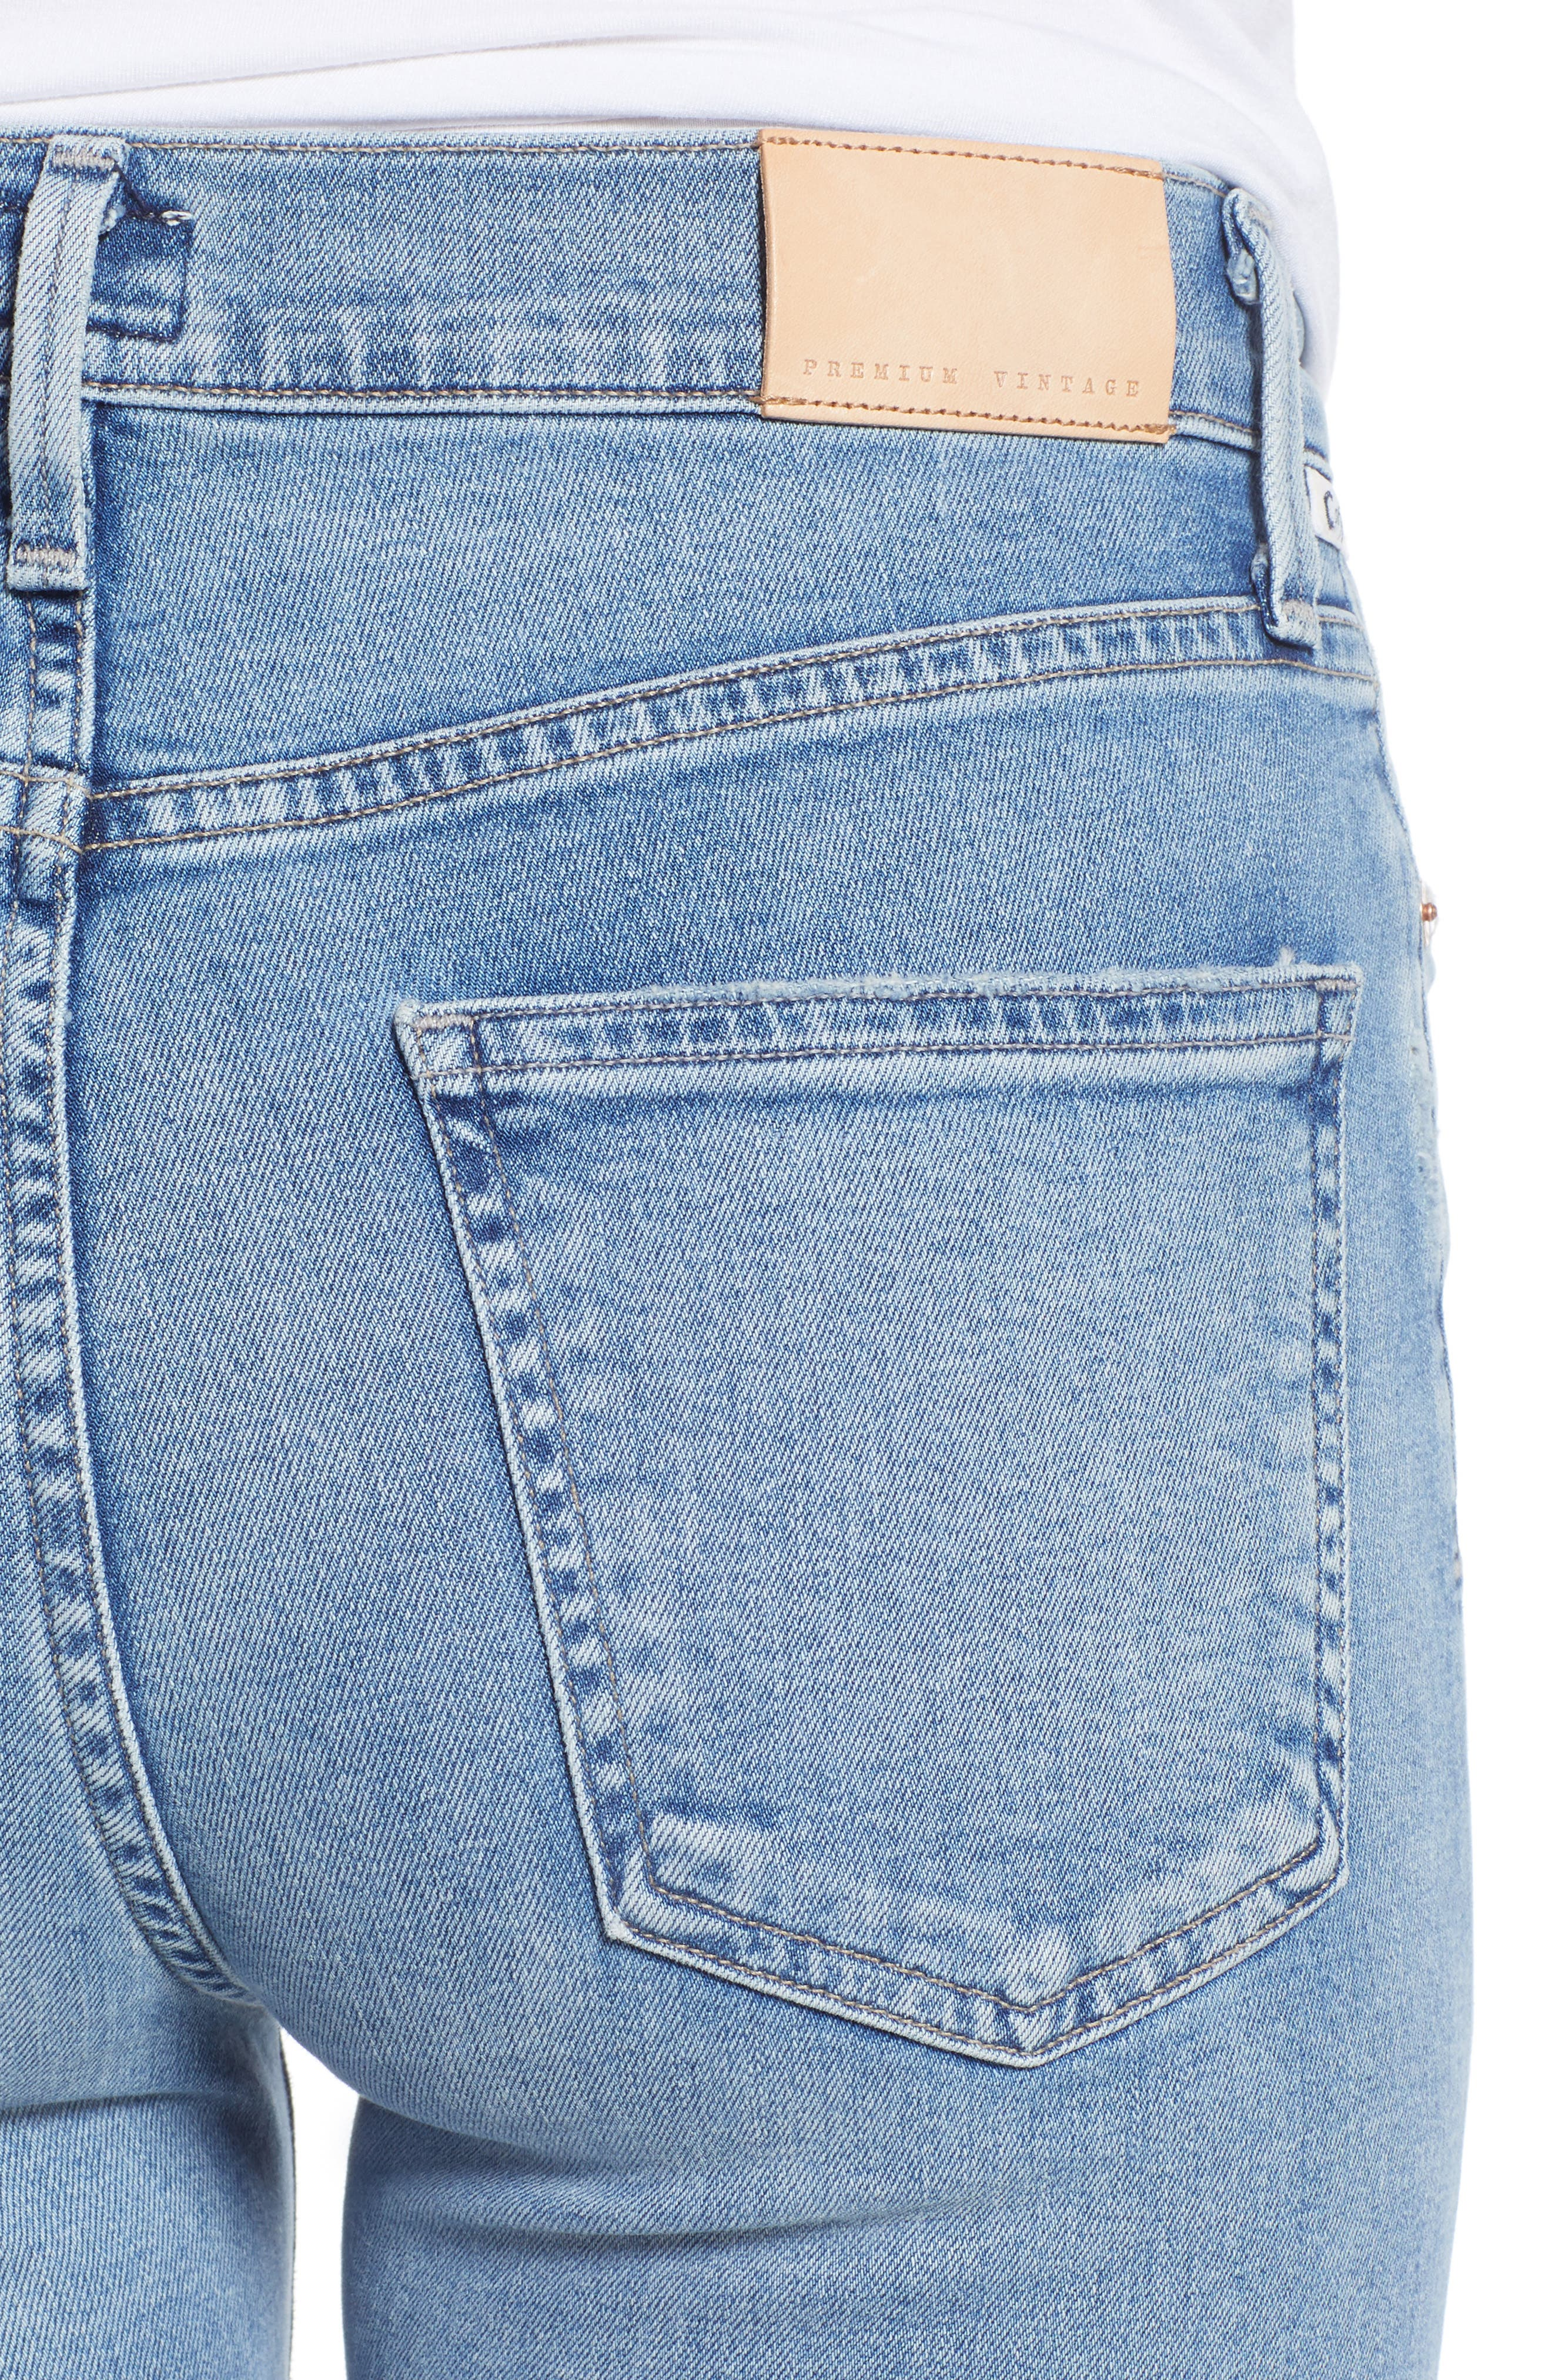 CITIZENS OF HUMANITY, Rocket High Waist Skinny Jeans, Alternate thumbnail 5, color, SMALL TALK